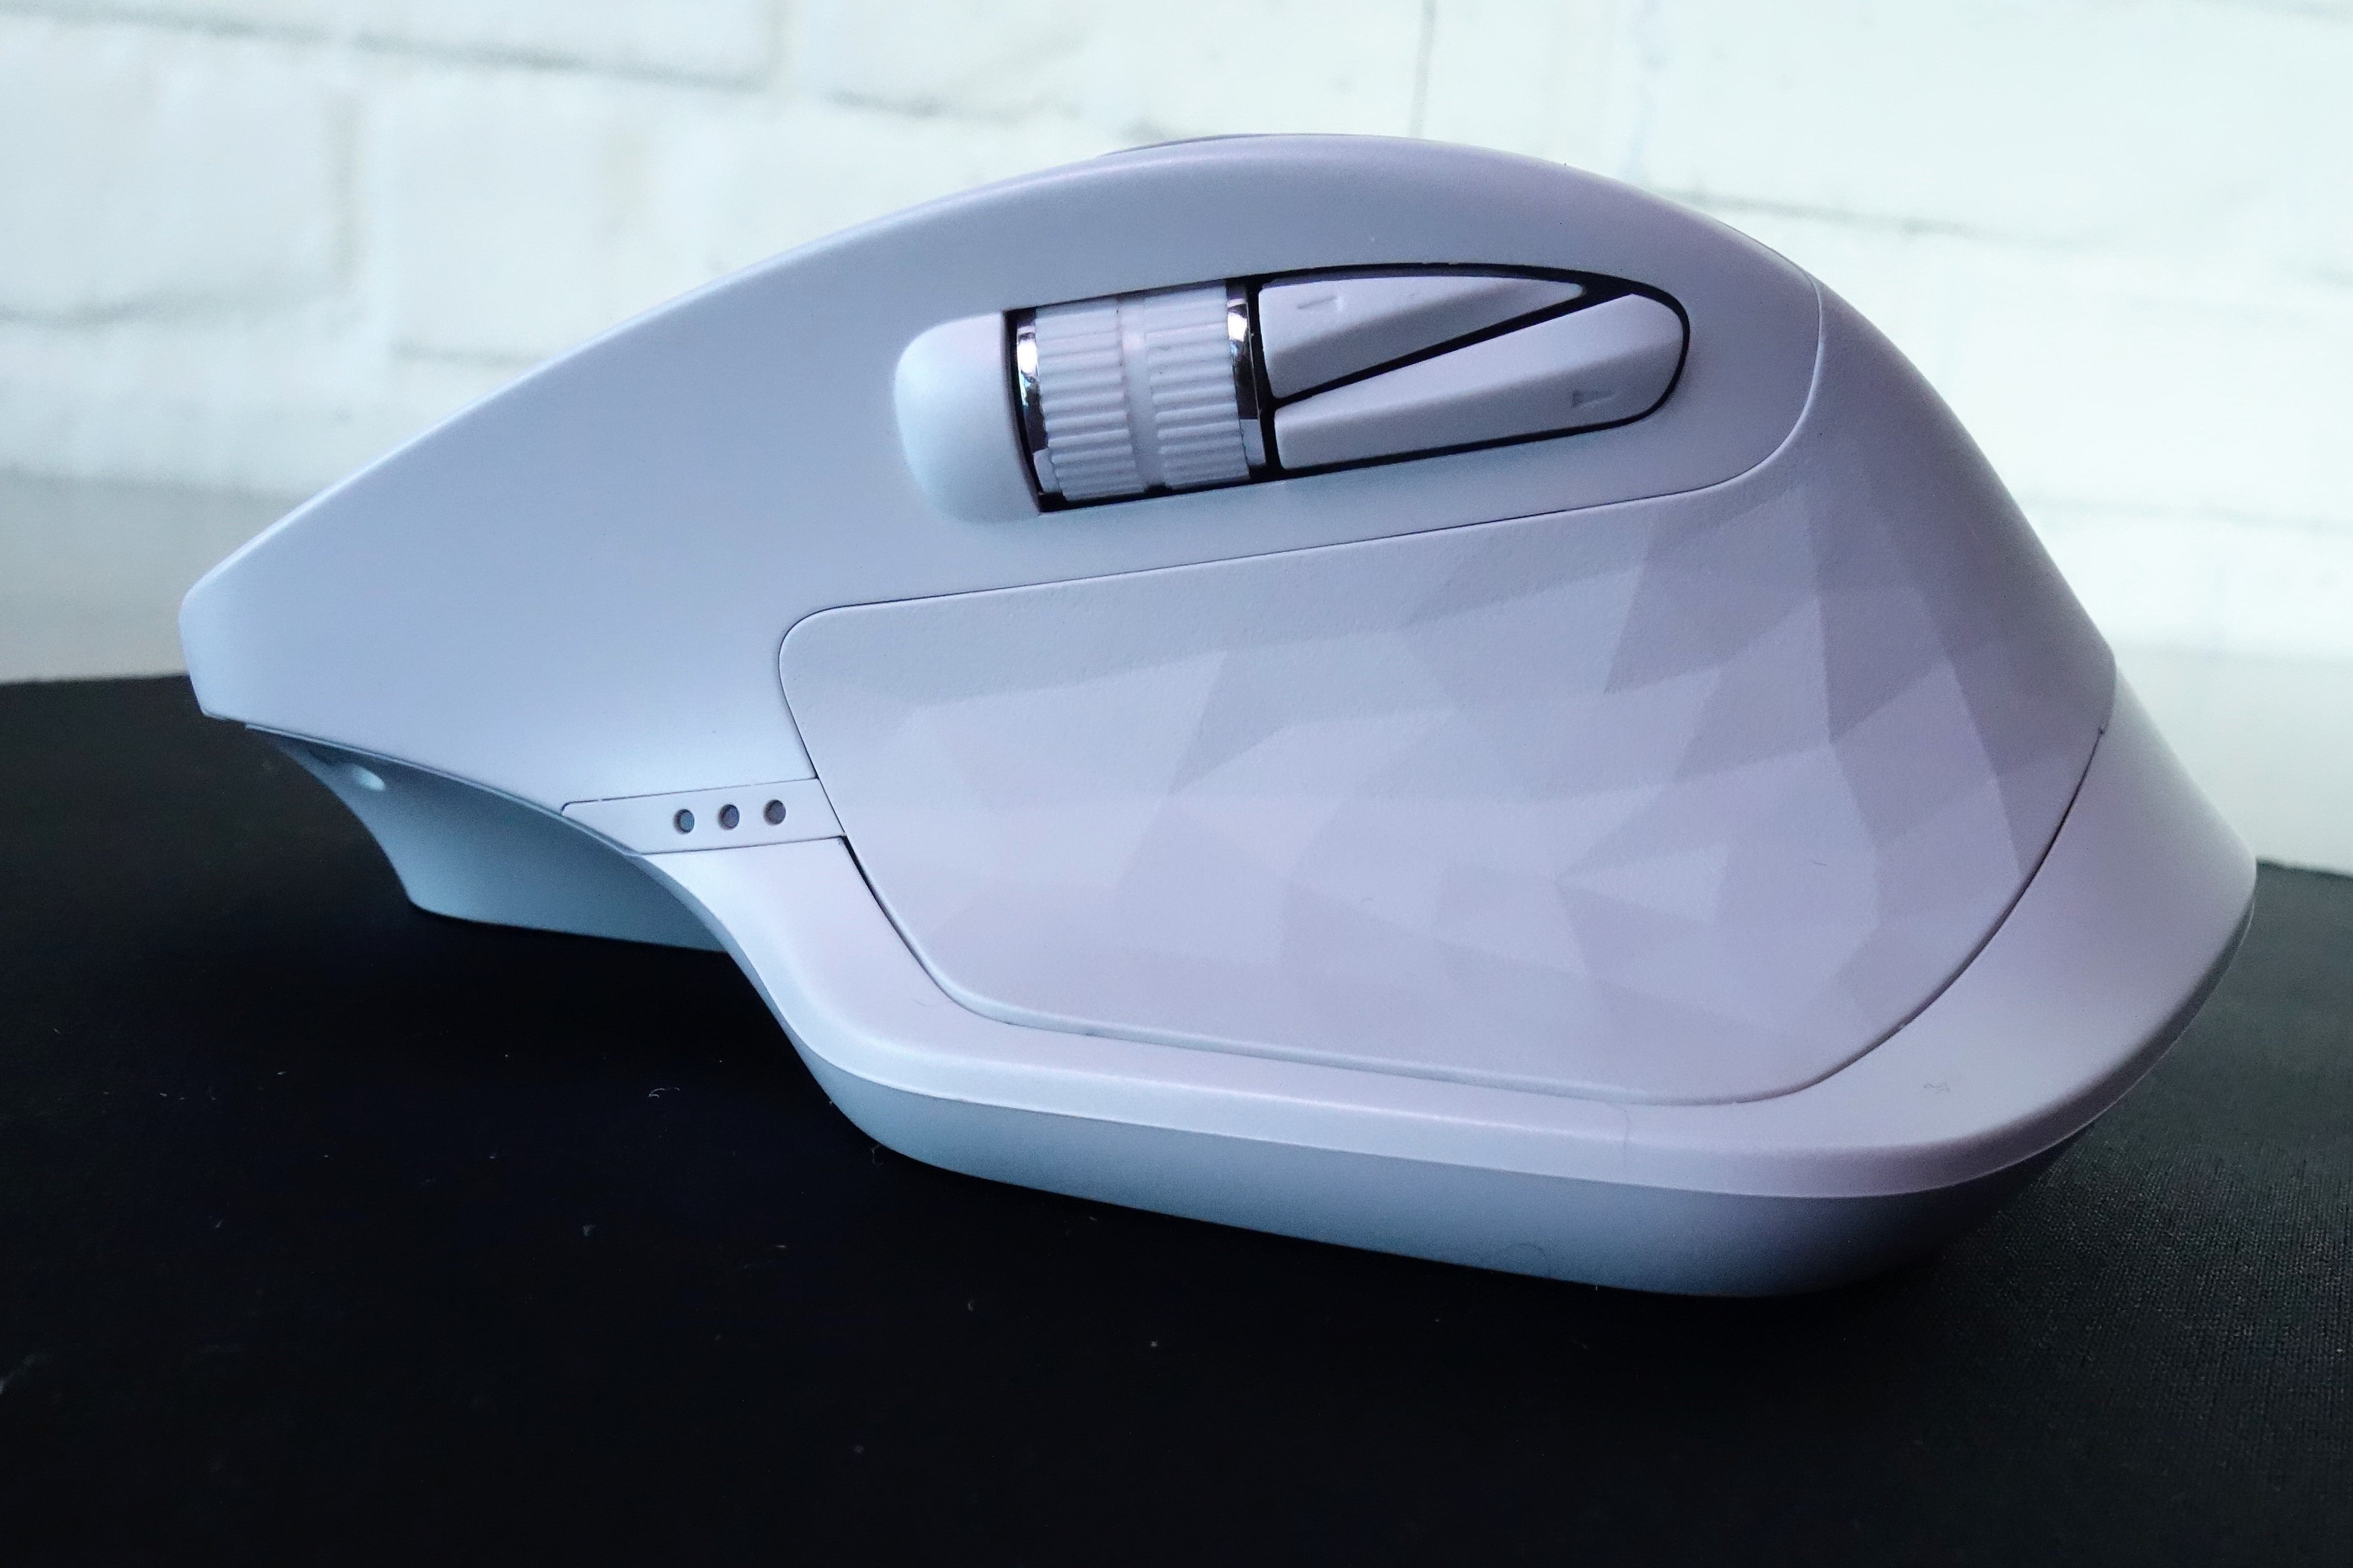 Logitech MX Master 2S review: The Flow software lifts this